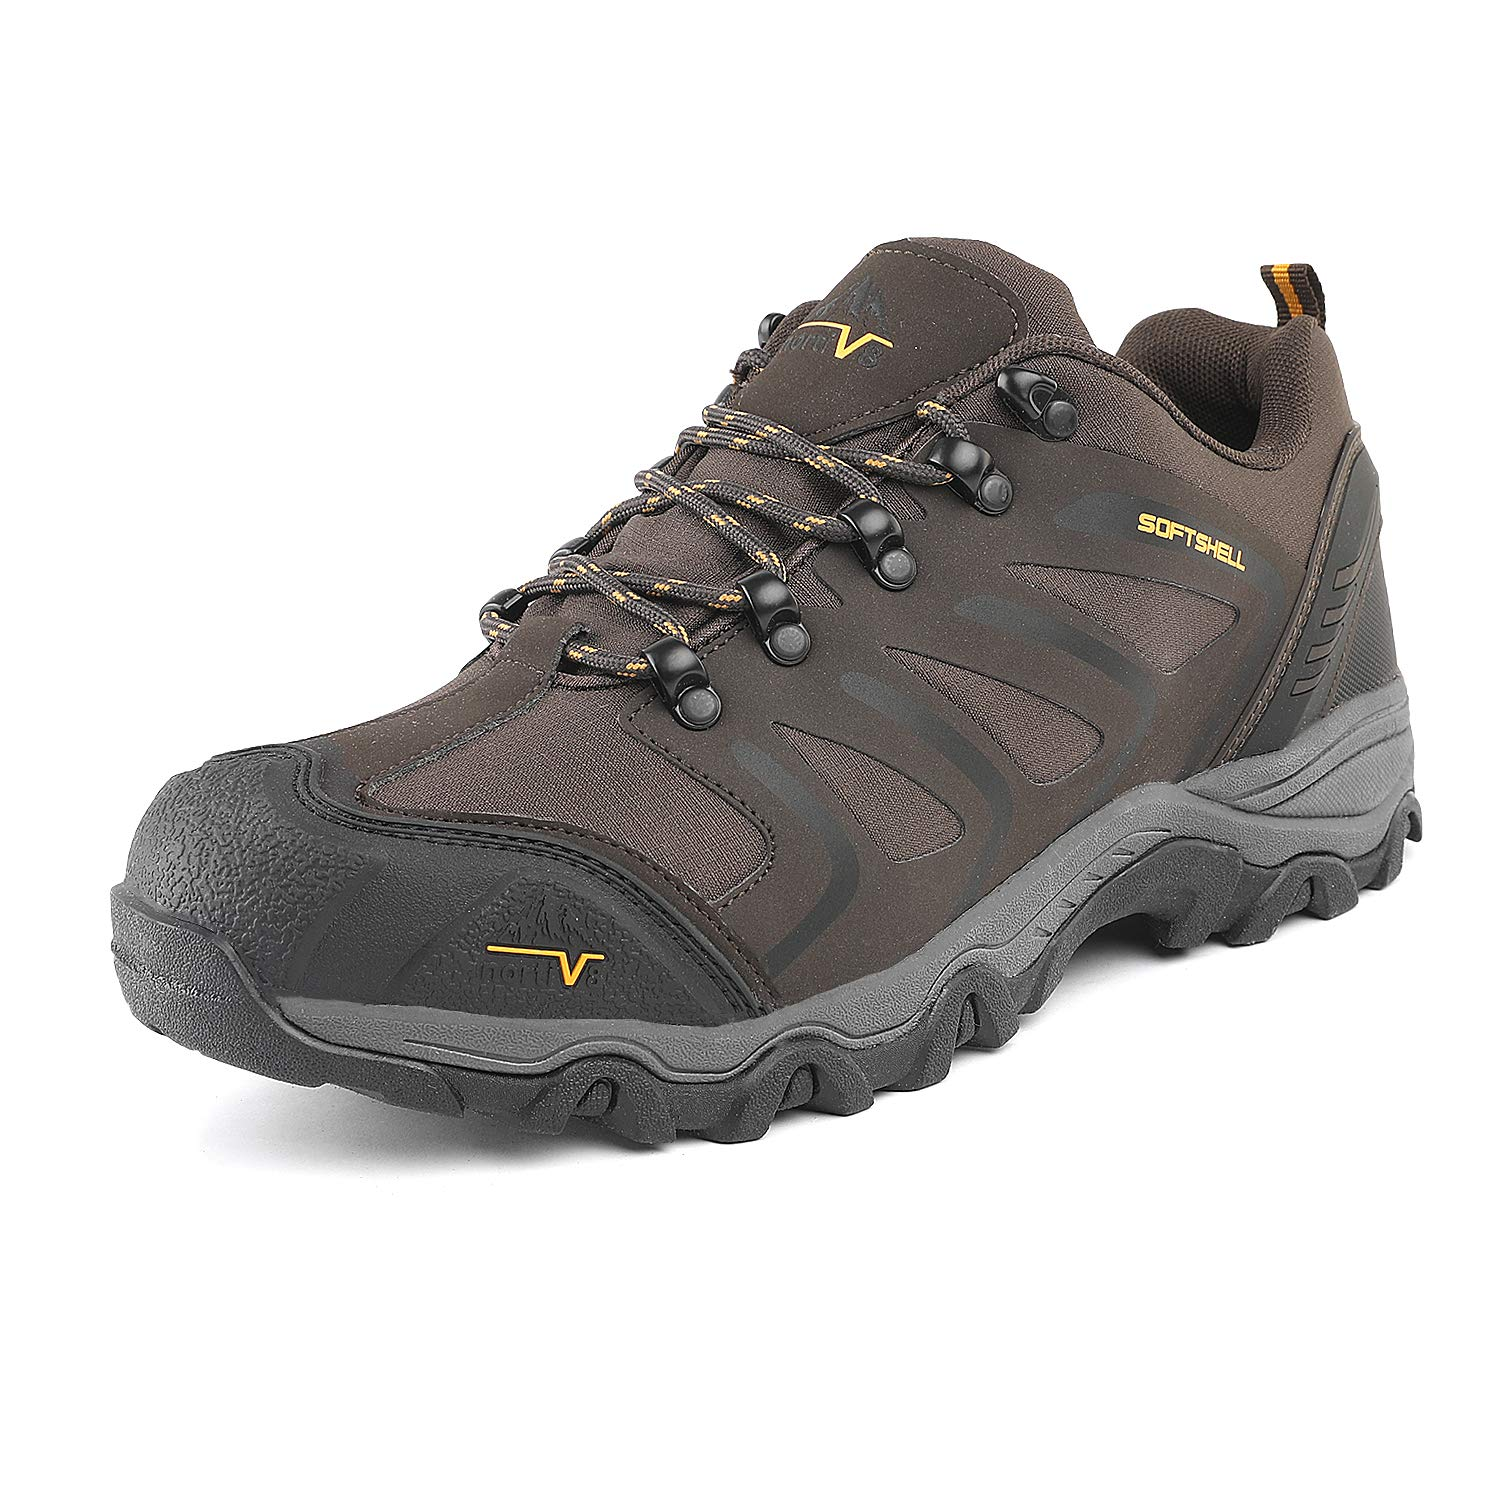 NORTIV 8 Men's 160448-low Brown Black Tan Low Top Waterproof Hiking Boots Outdoor Lightweight Shoes Backpacking Trekking Trails Size 10 M US